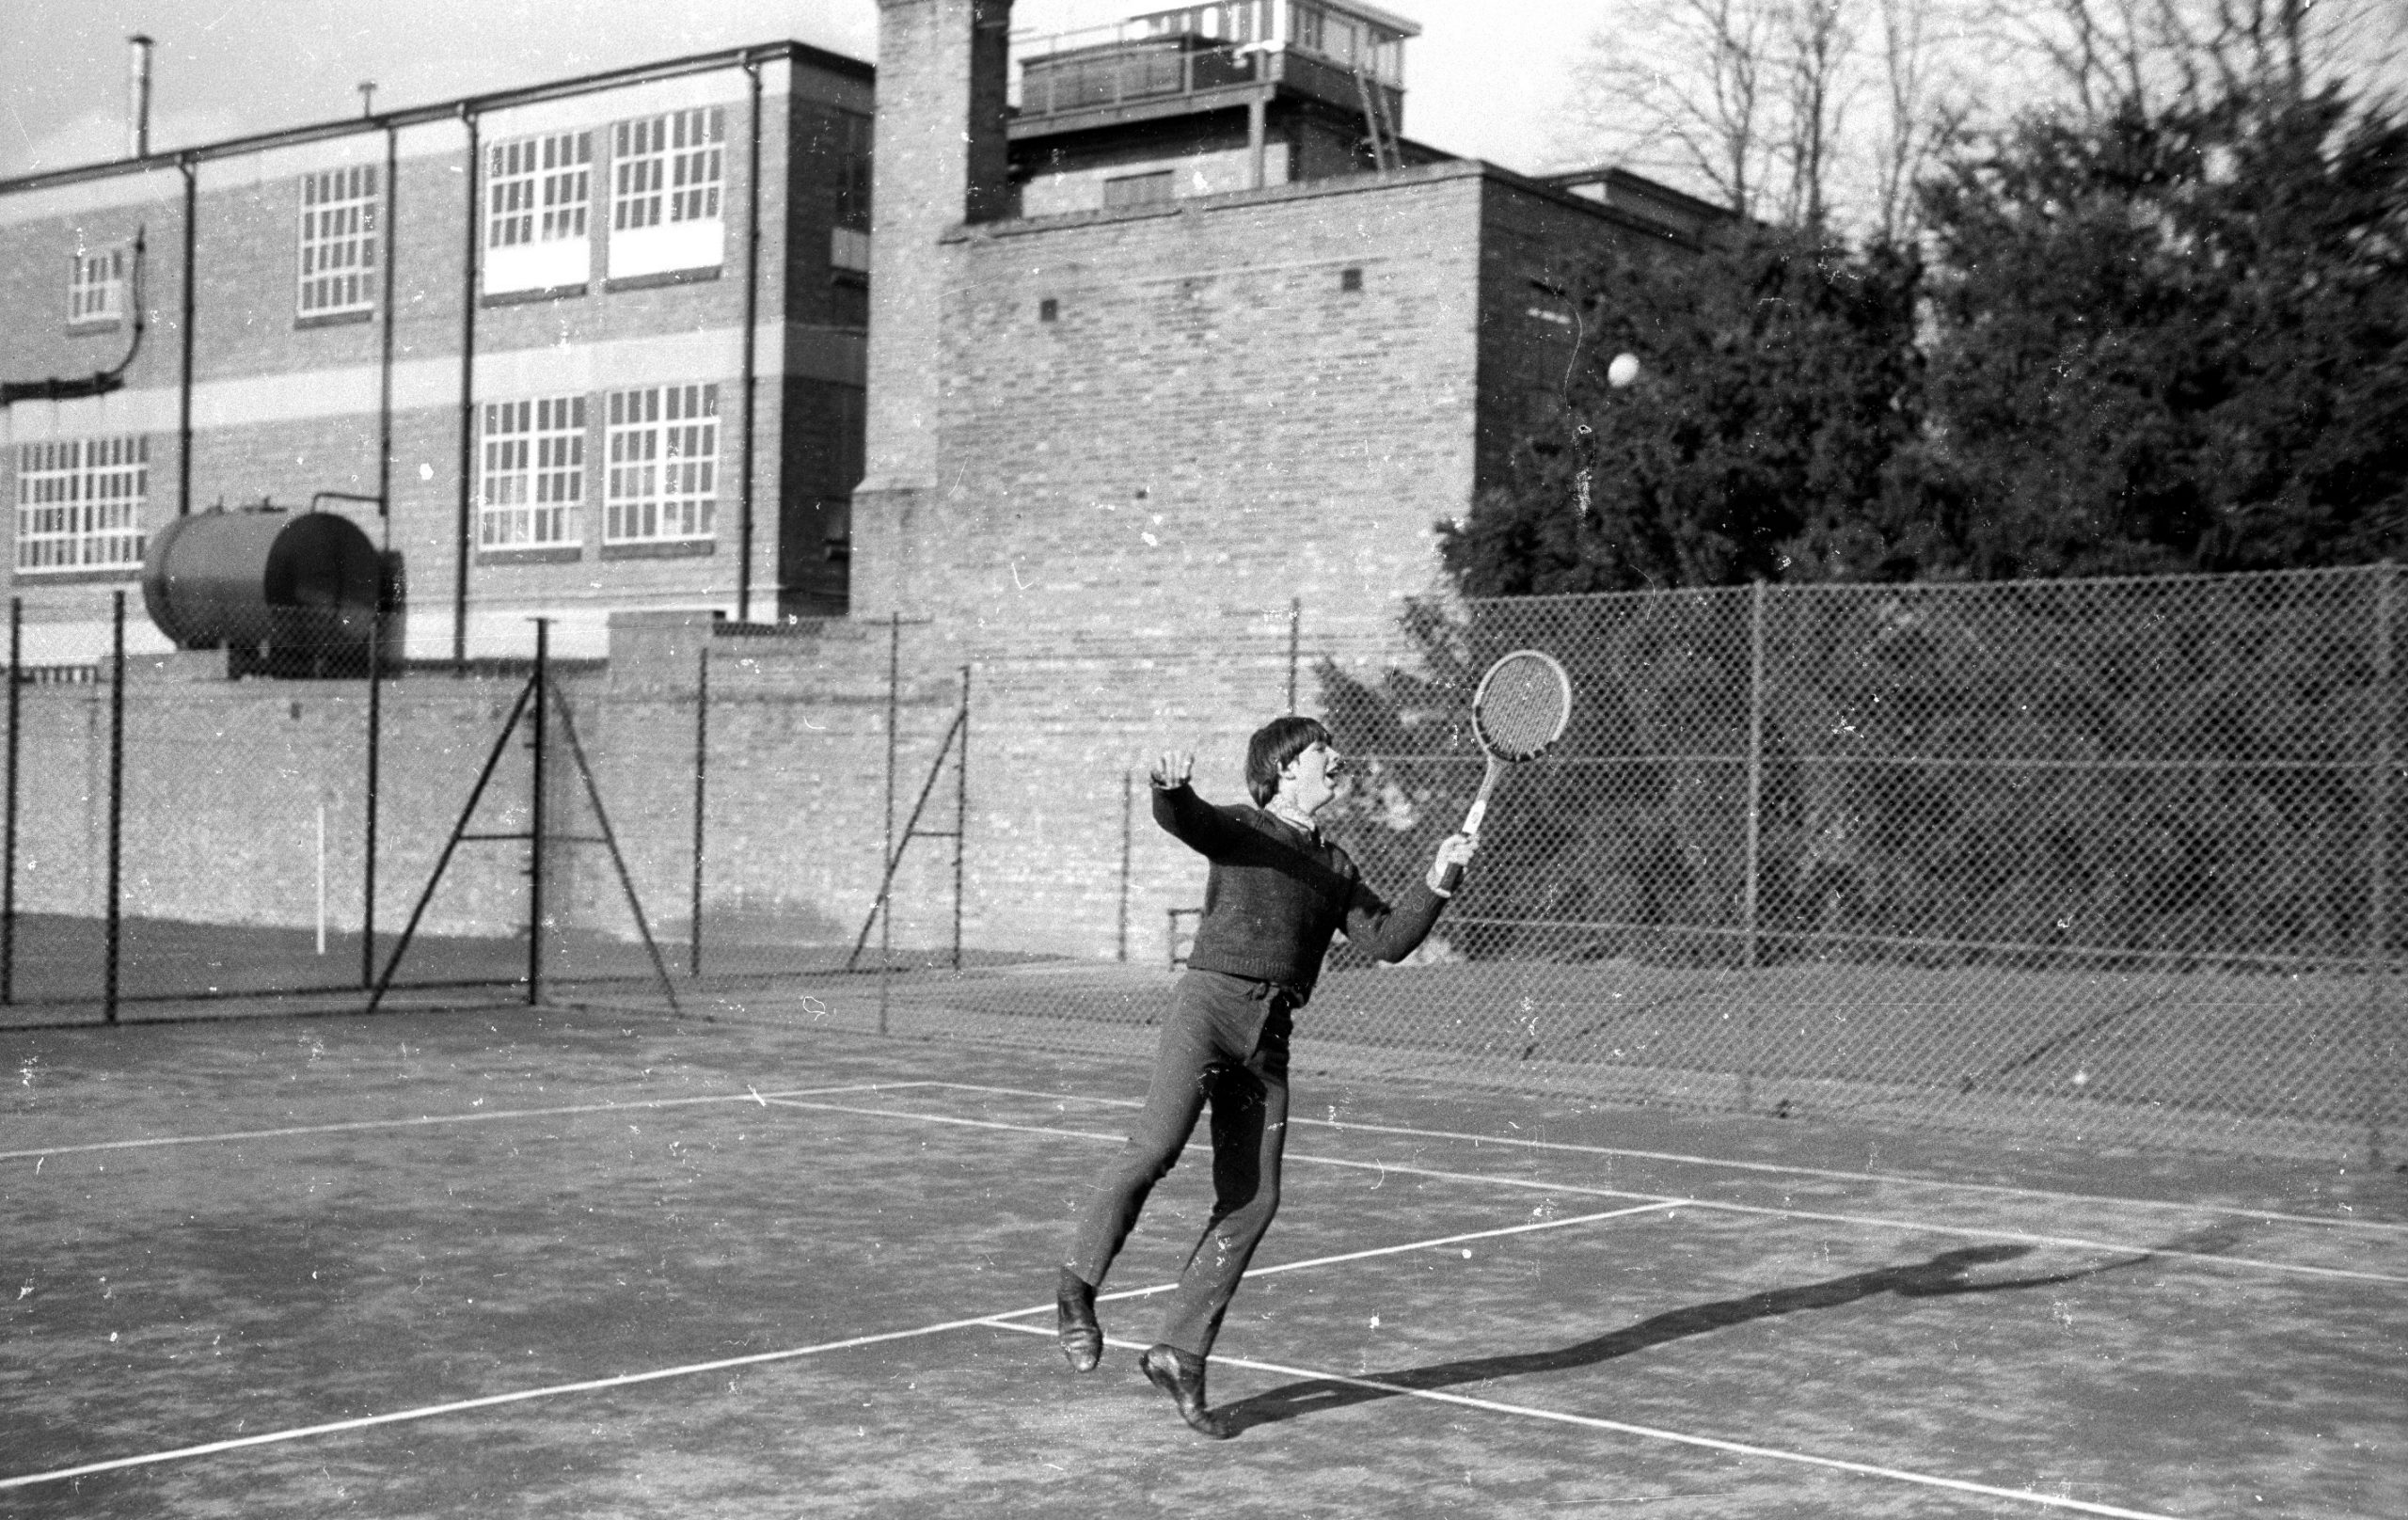 Chris playing tennis in oxford 1967